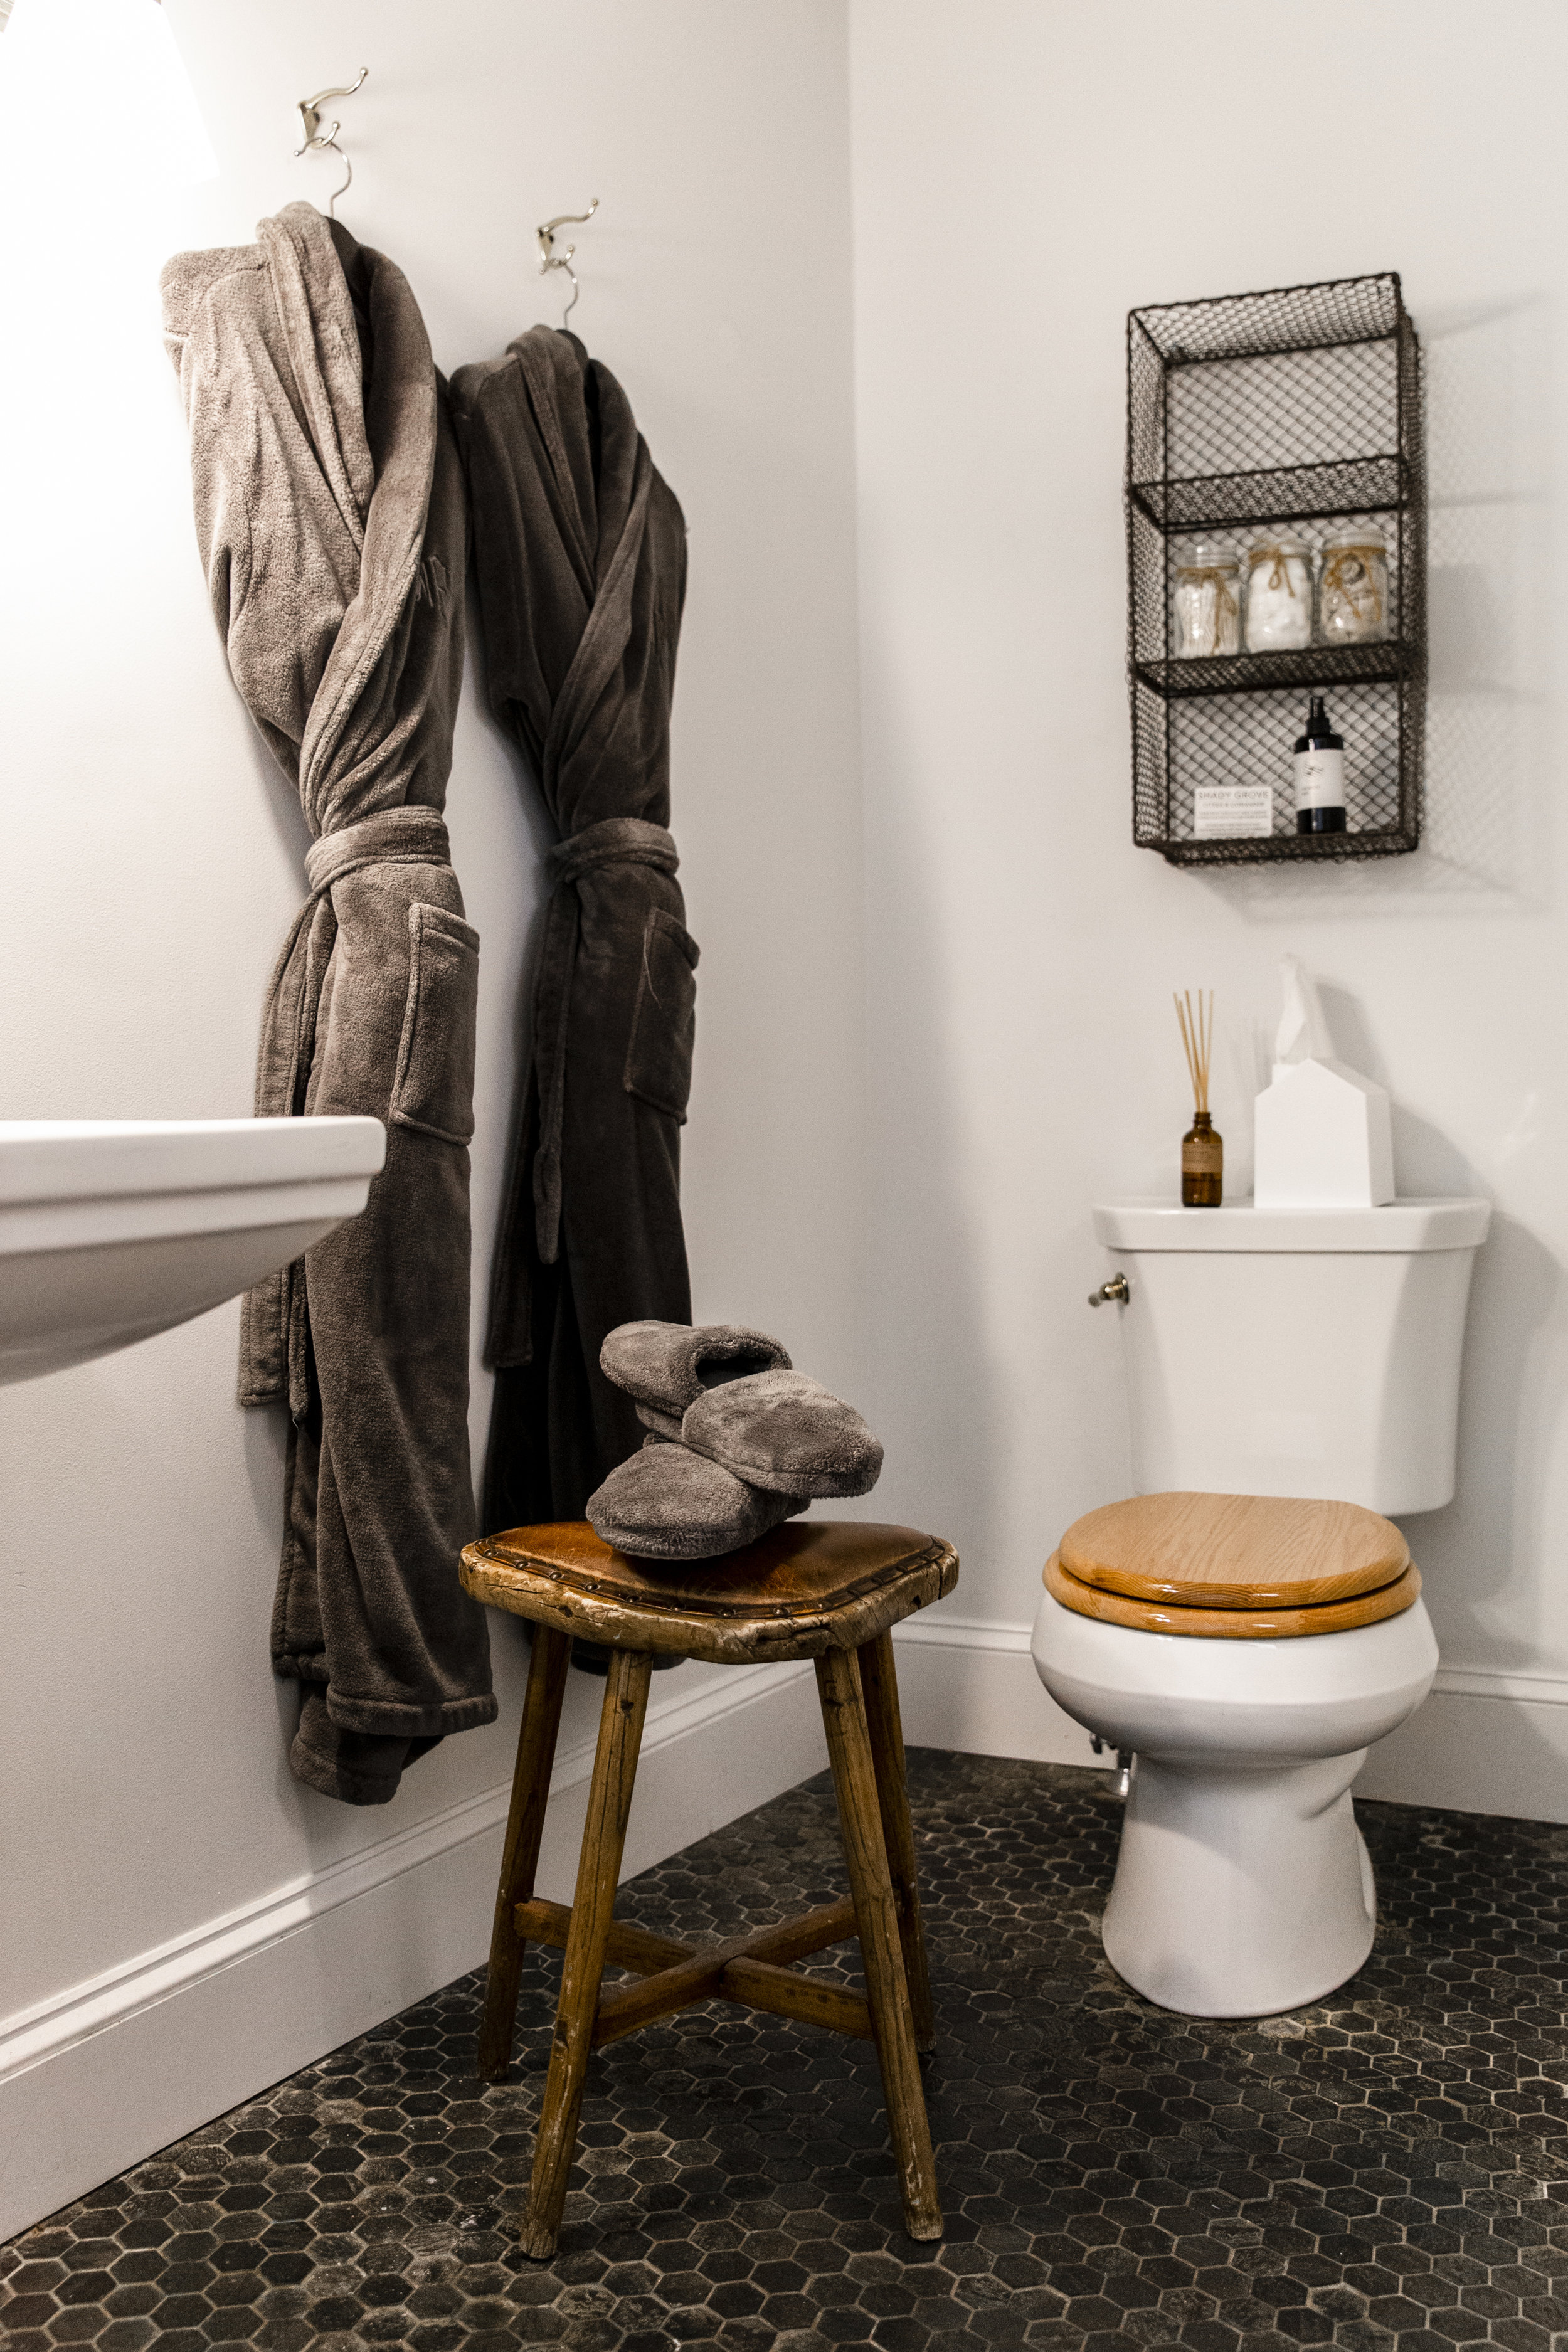 The Abigail Suite - luxurious robes in bathroom